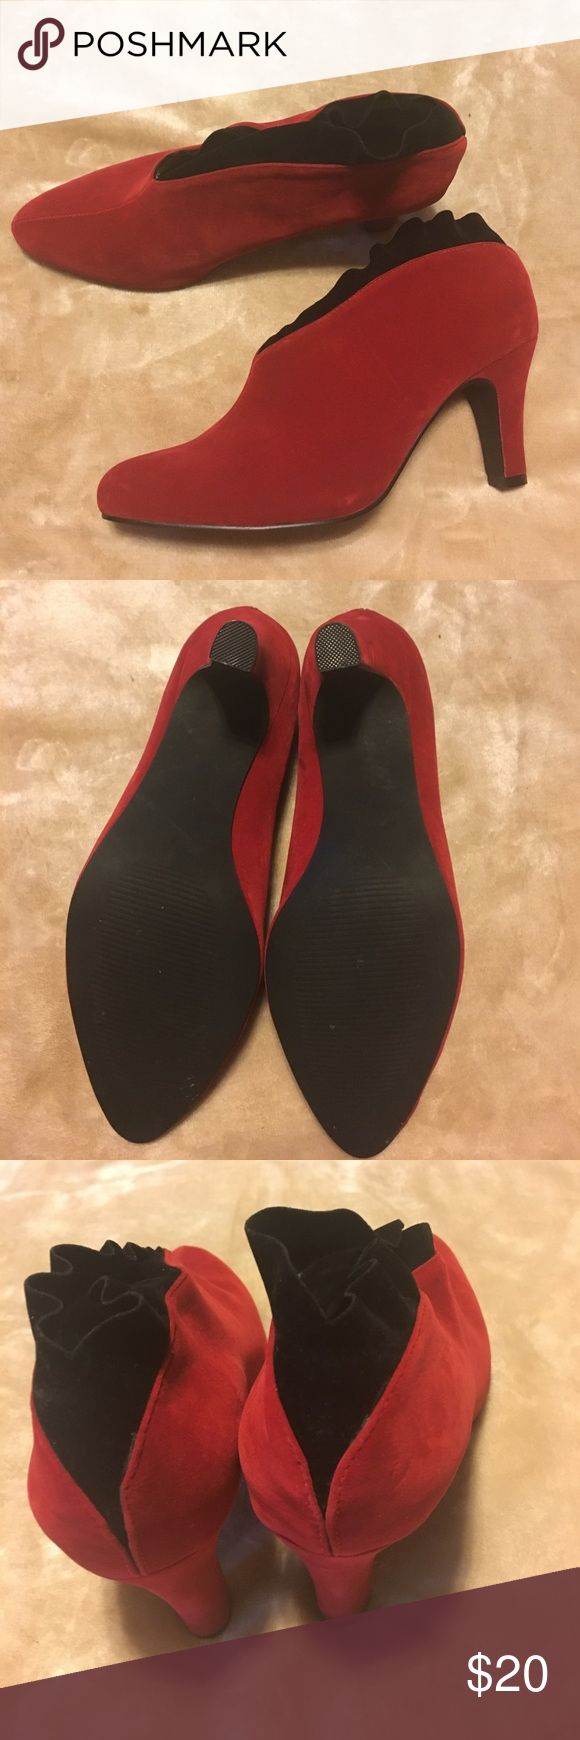 Andiamo marci ankle boots red and black 5.5 Andiamo Marci red black ruffled ankle boots andiamo Shoes Ankle Boots & Booties